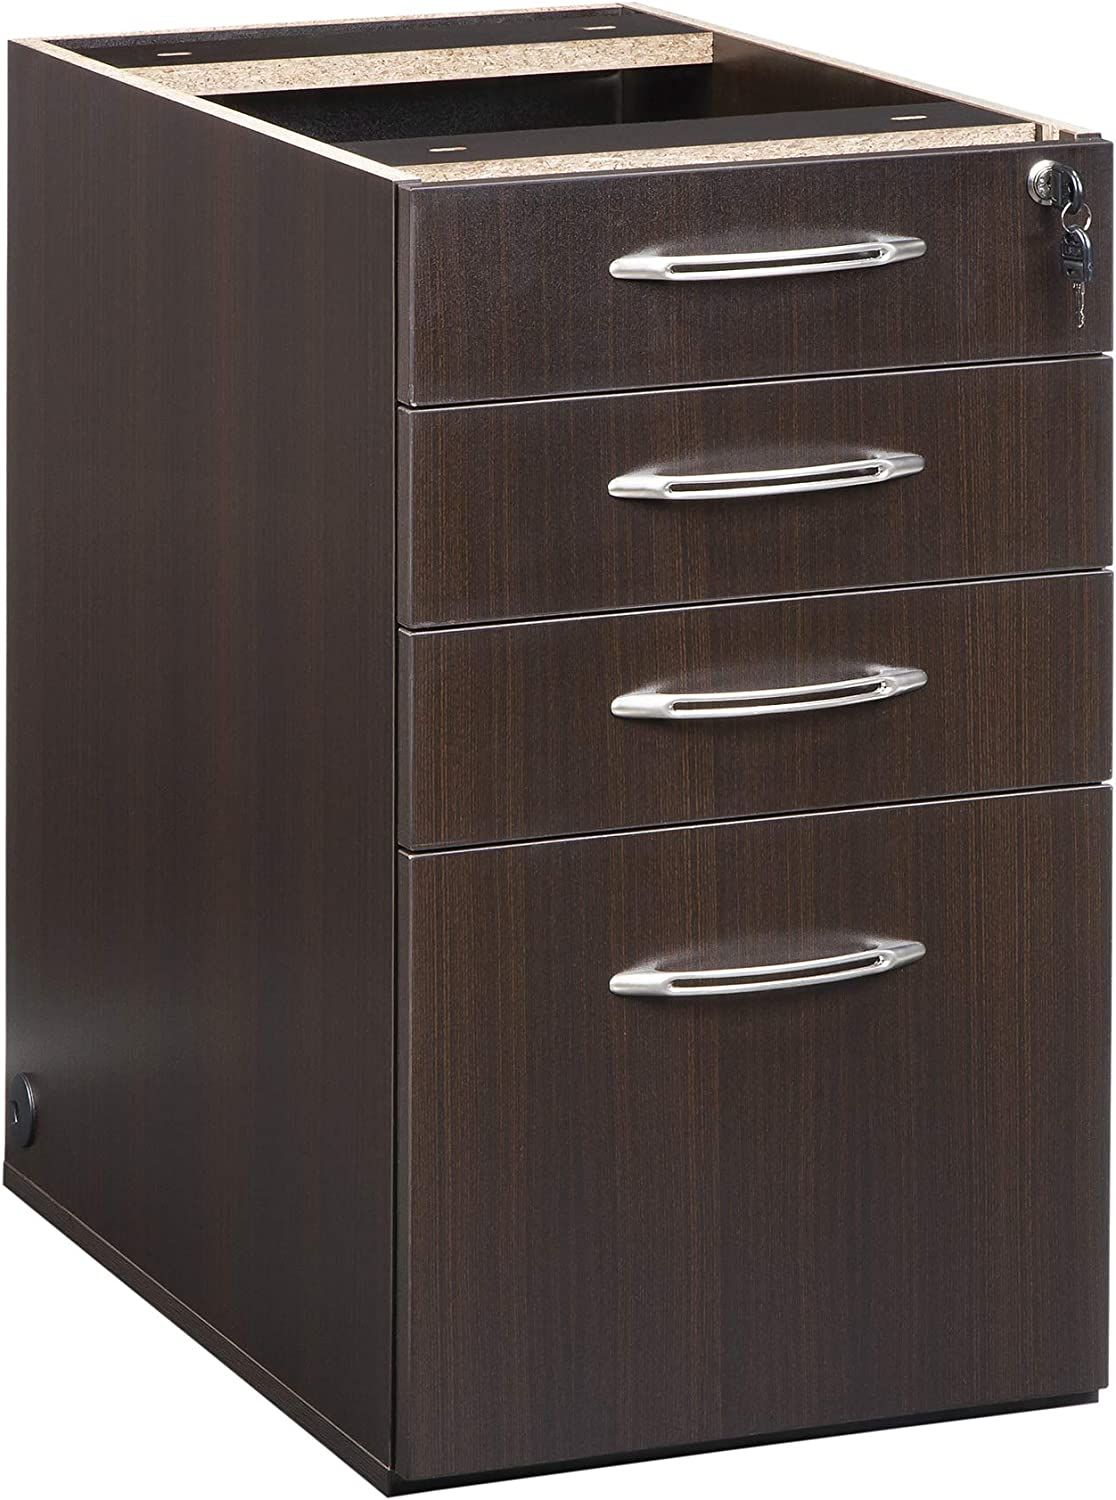 Mocha Tf sold separately Mayline APBBF26LDC Aberdeen 26D Desk Pedestal PBBF for use with Desk